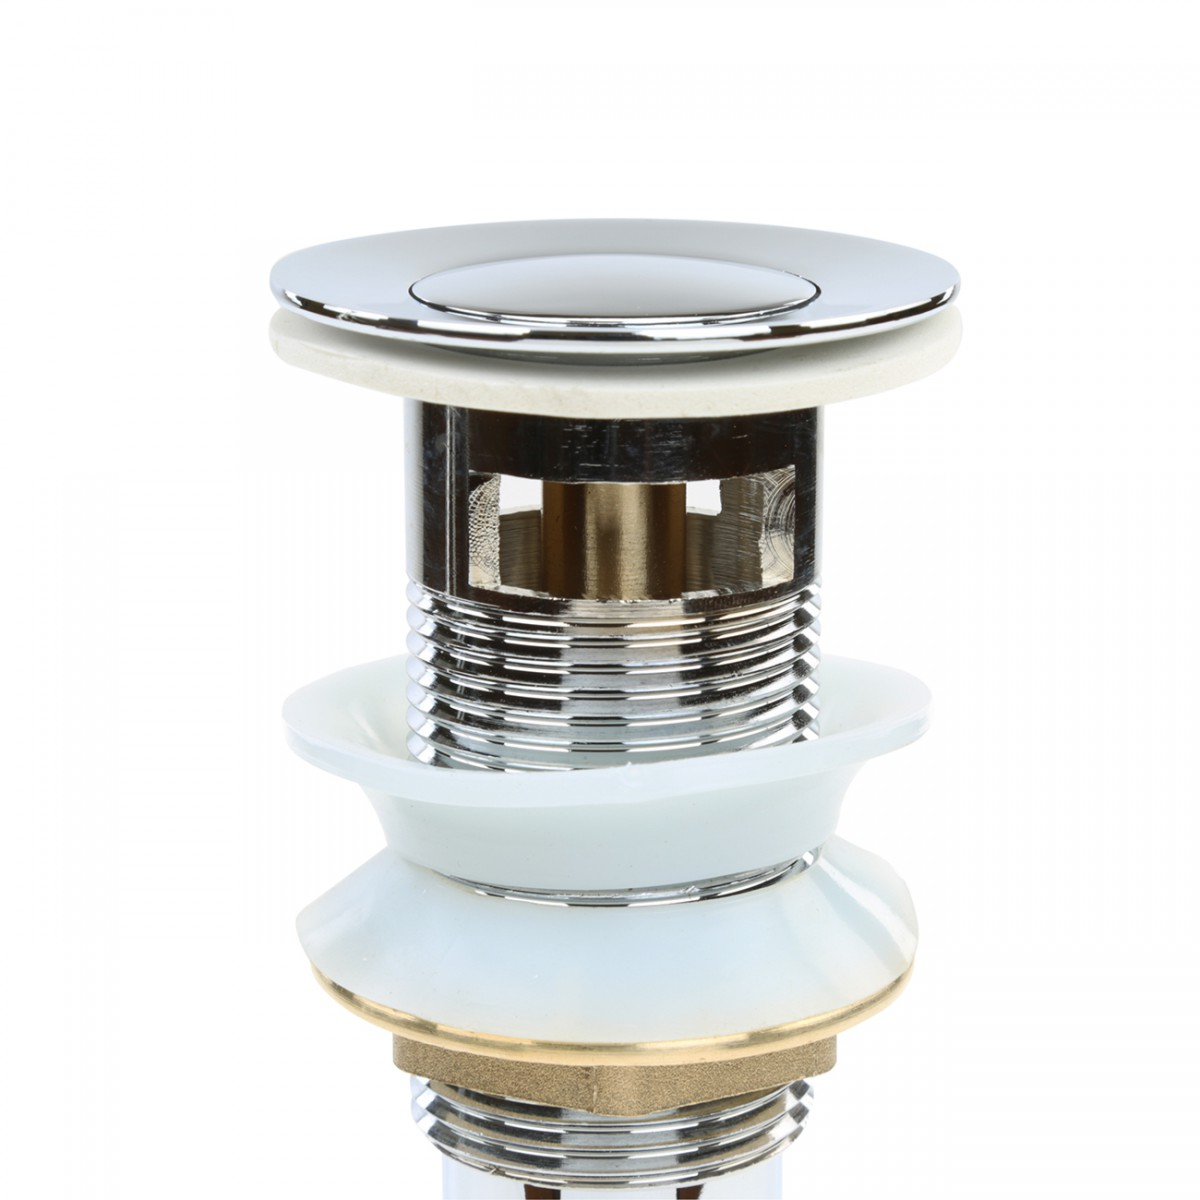 Sink Drain Chrome PopUp With Overflow Chrome Drain Bathroom Sink Drain Drain With Overflow